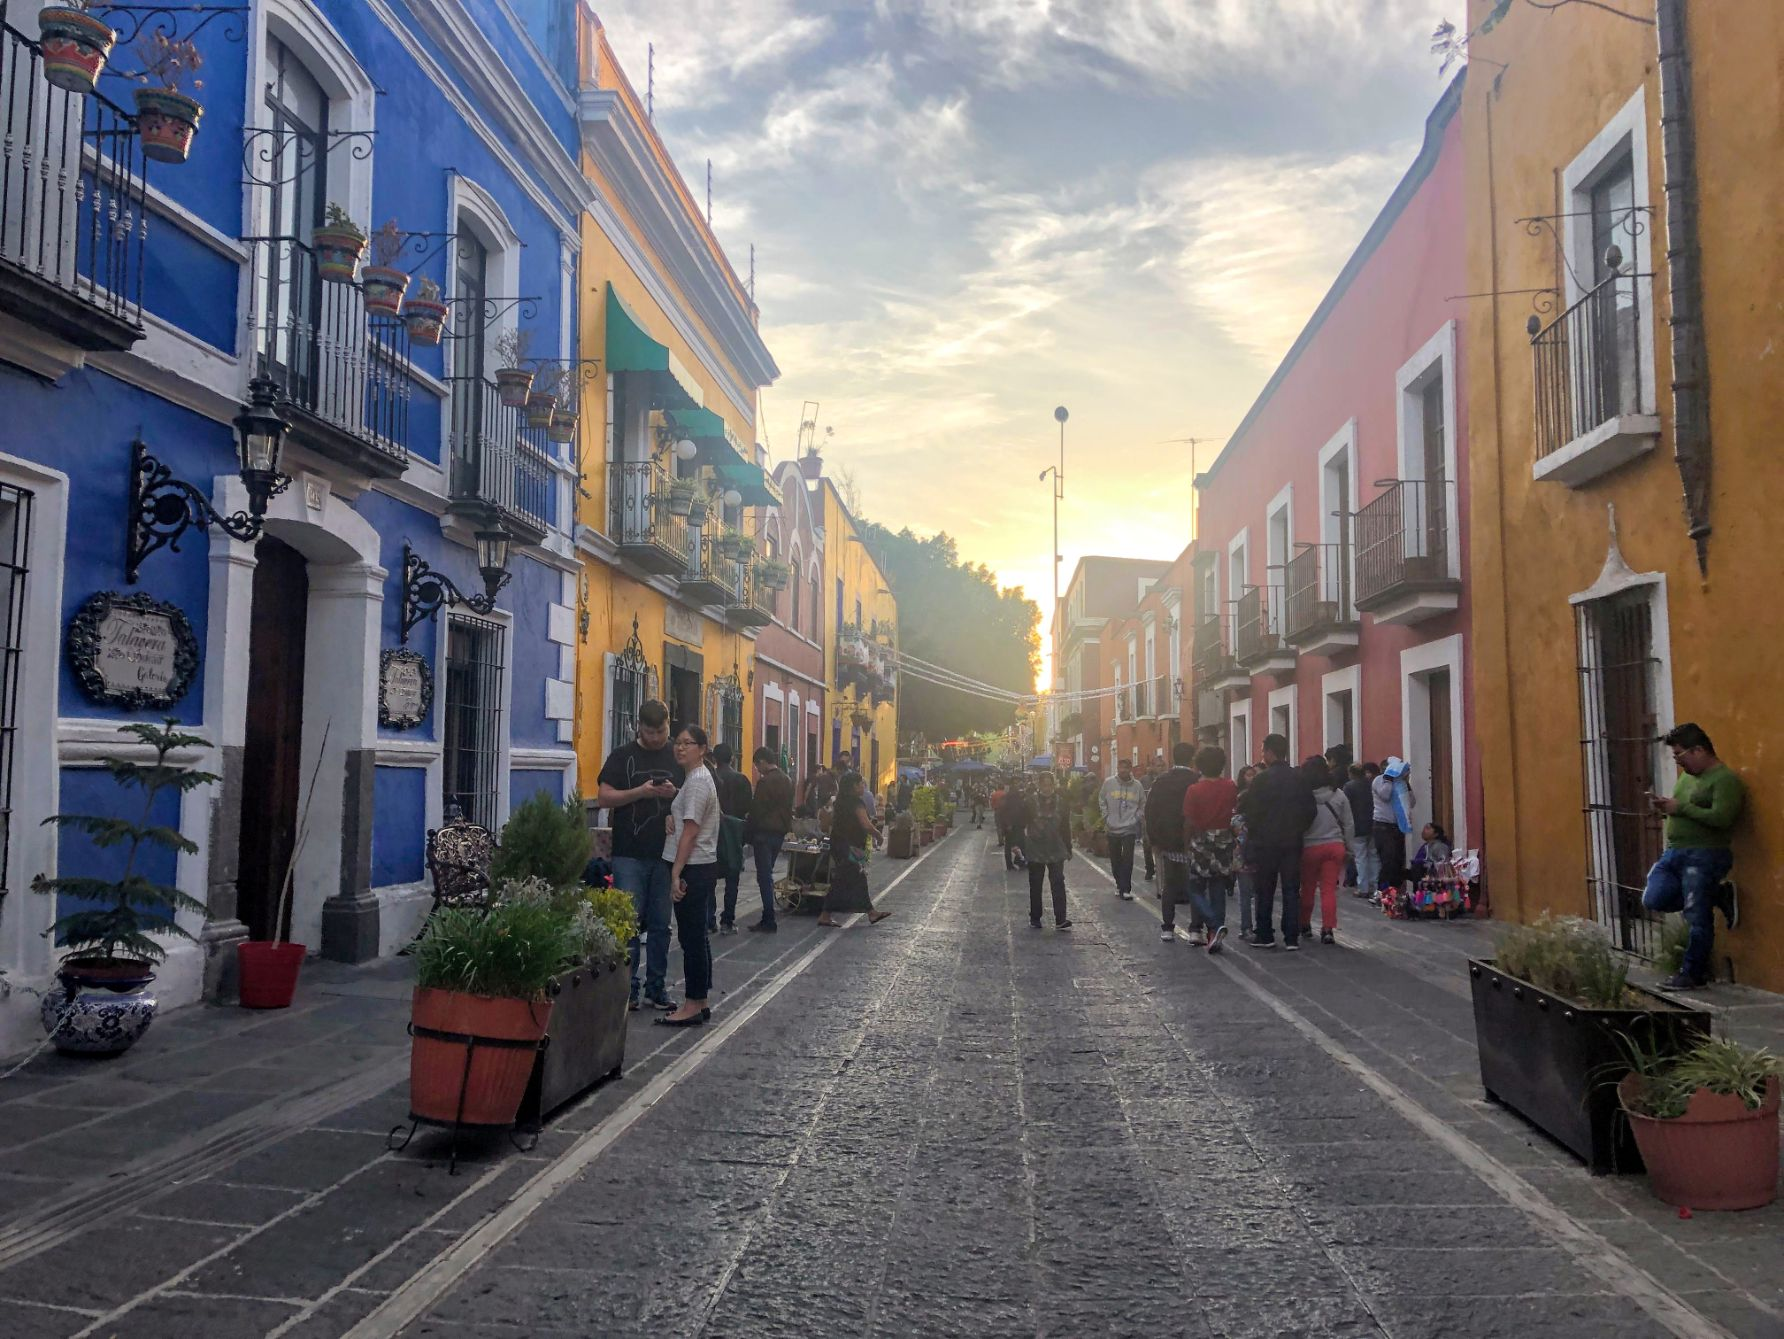 colorful street in the Puebla centro historico neighborhood at sunset